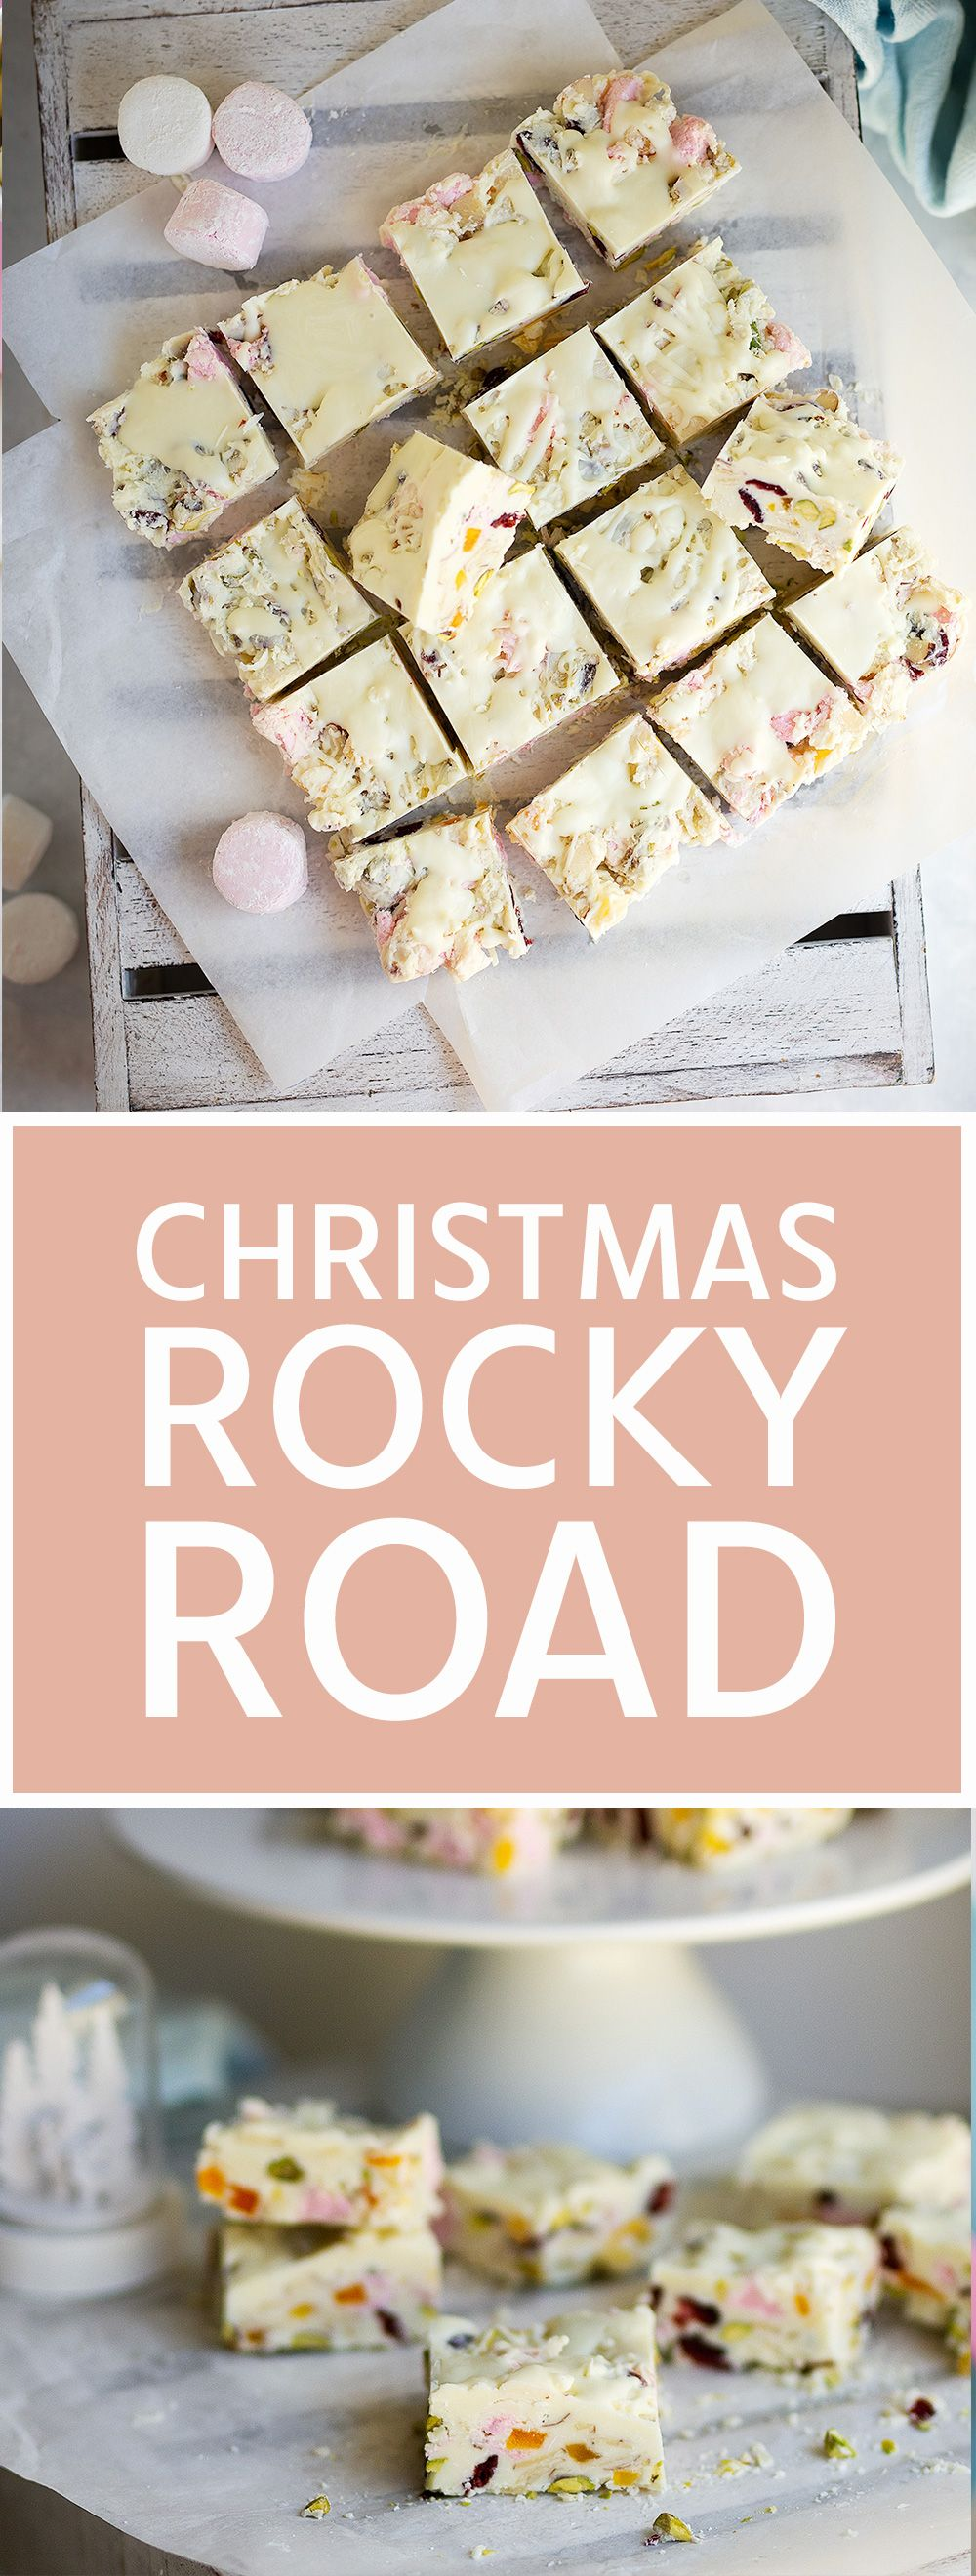 Photo of Christmas Rocky Road Recipe | School Lunch Boxes | Kids Eat by Shanai